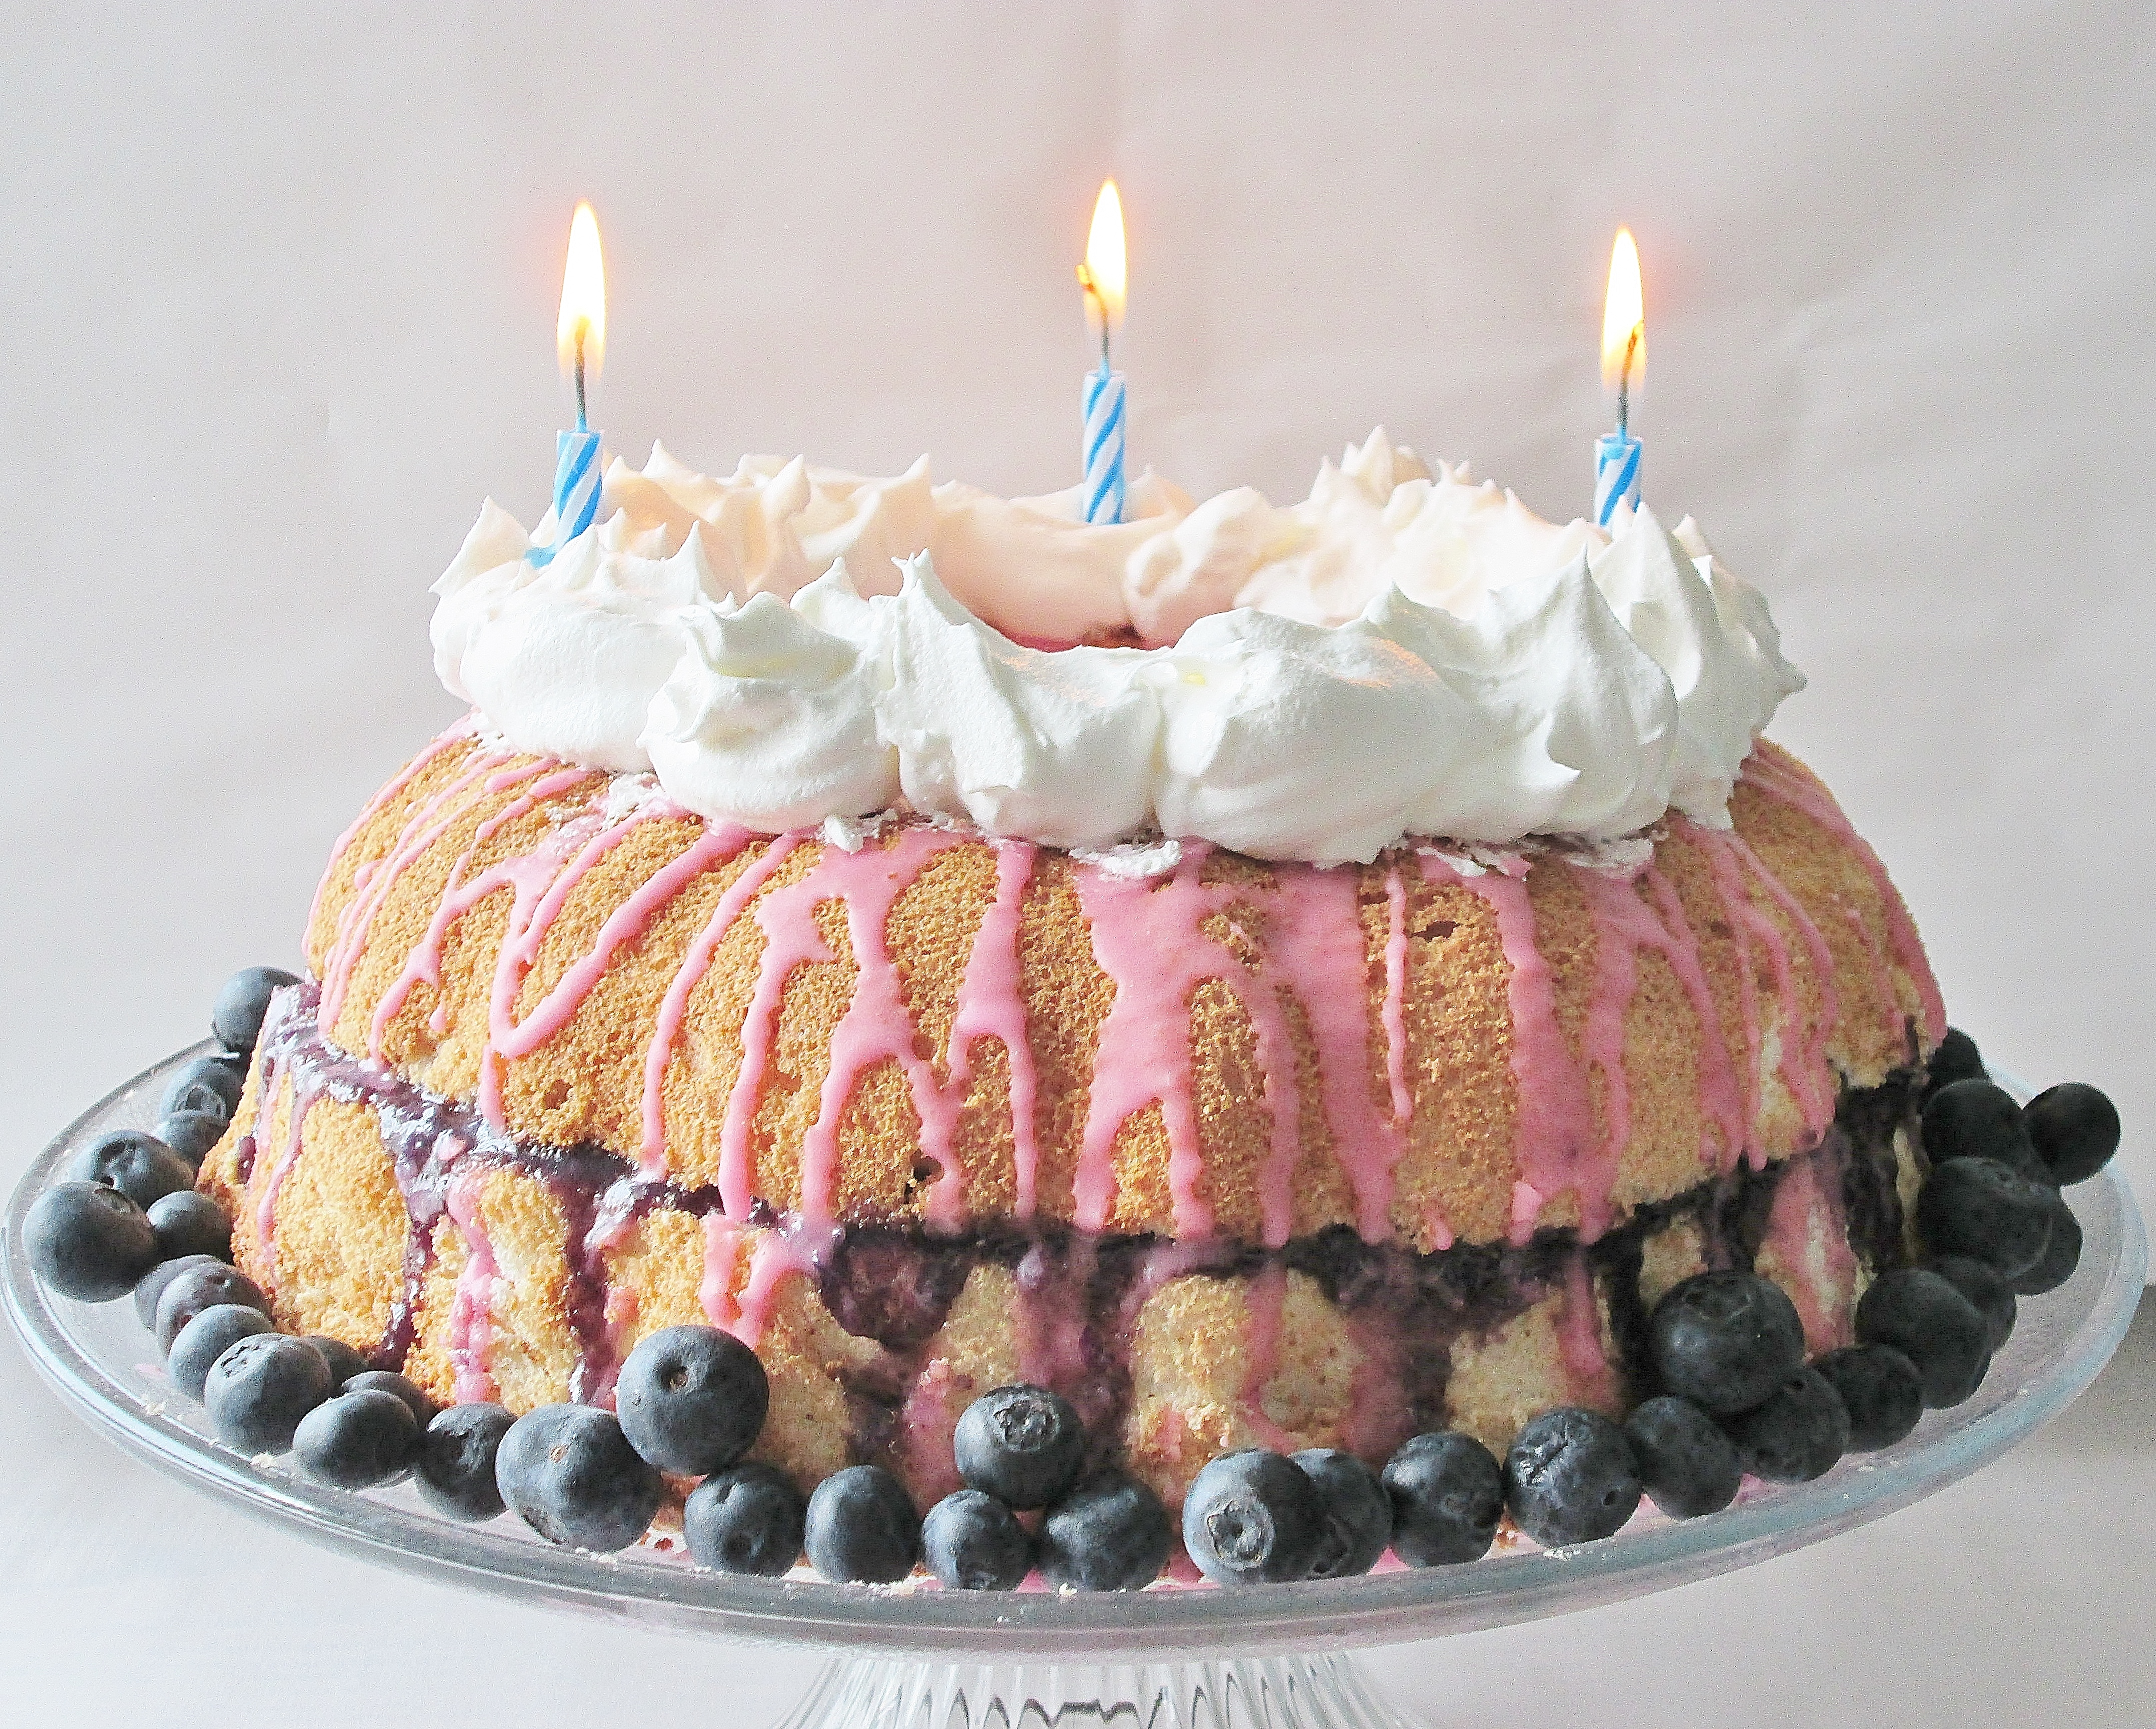 Eeyores Hipy Bthuthday Birthday Cake Angel Food Cake with